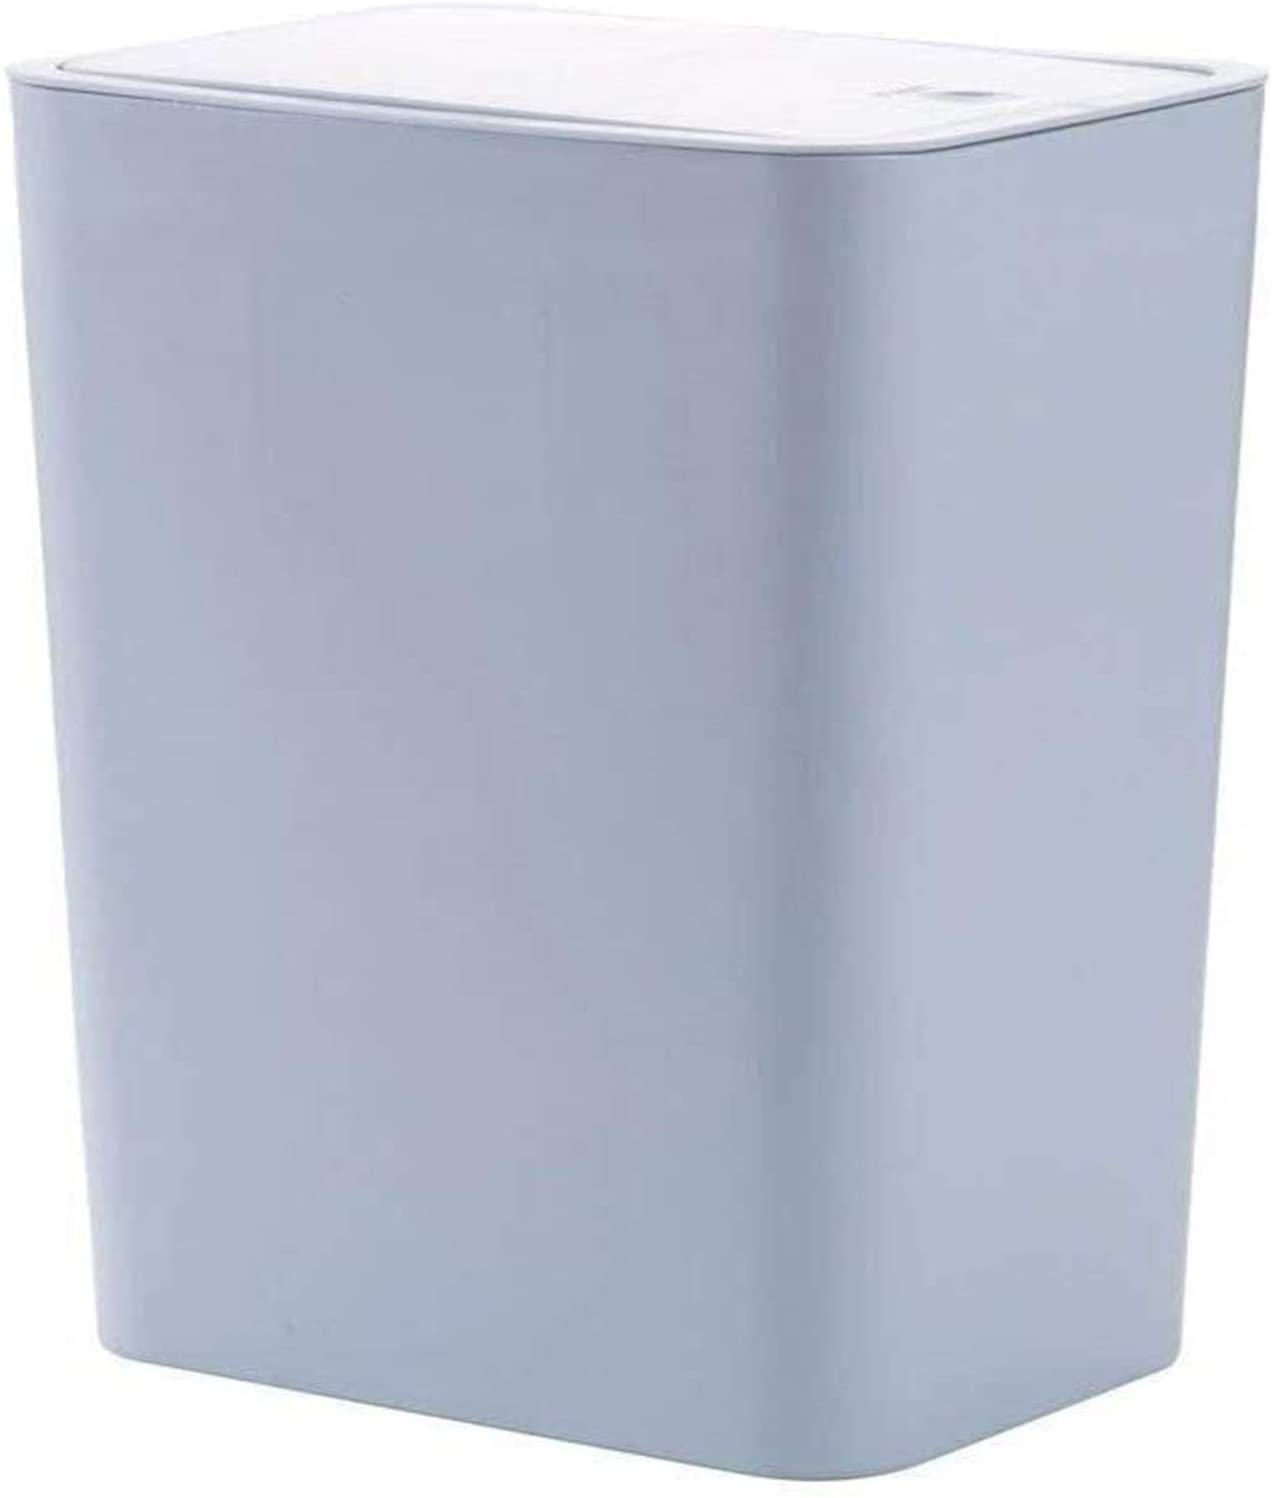 ghjk Garbage Bin Plastic Trash Can Push-Lid Touch Recycle Bin Rectangular Living Room Bathroom with Lid Narrow Trash Bin (Color : Gray-Blue, Size : Small)